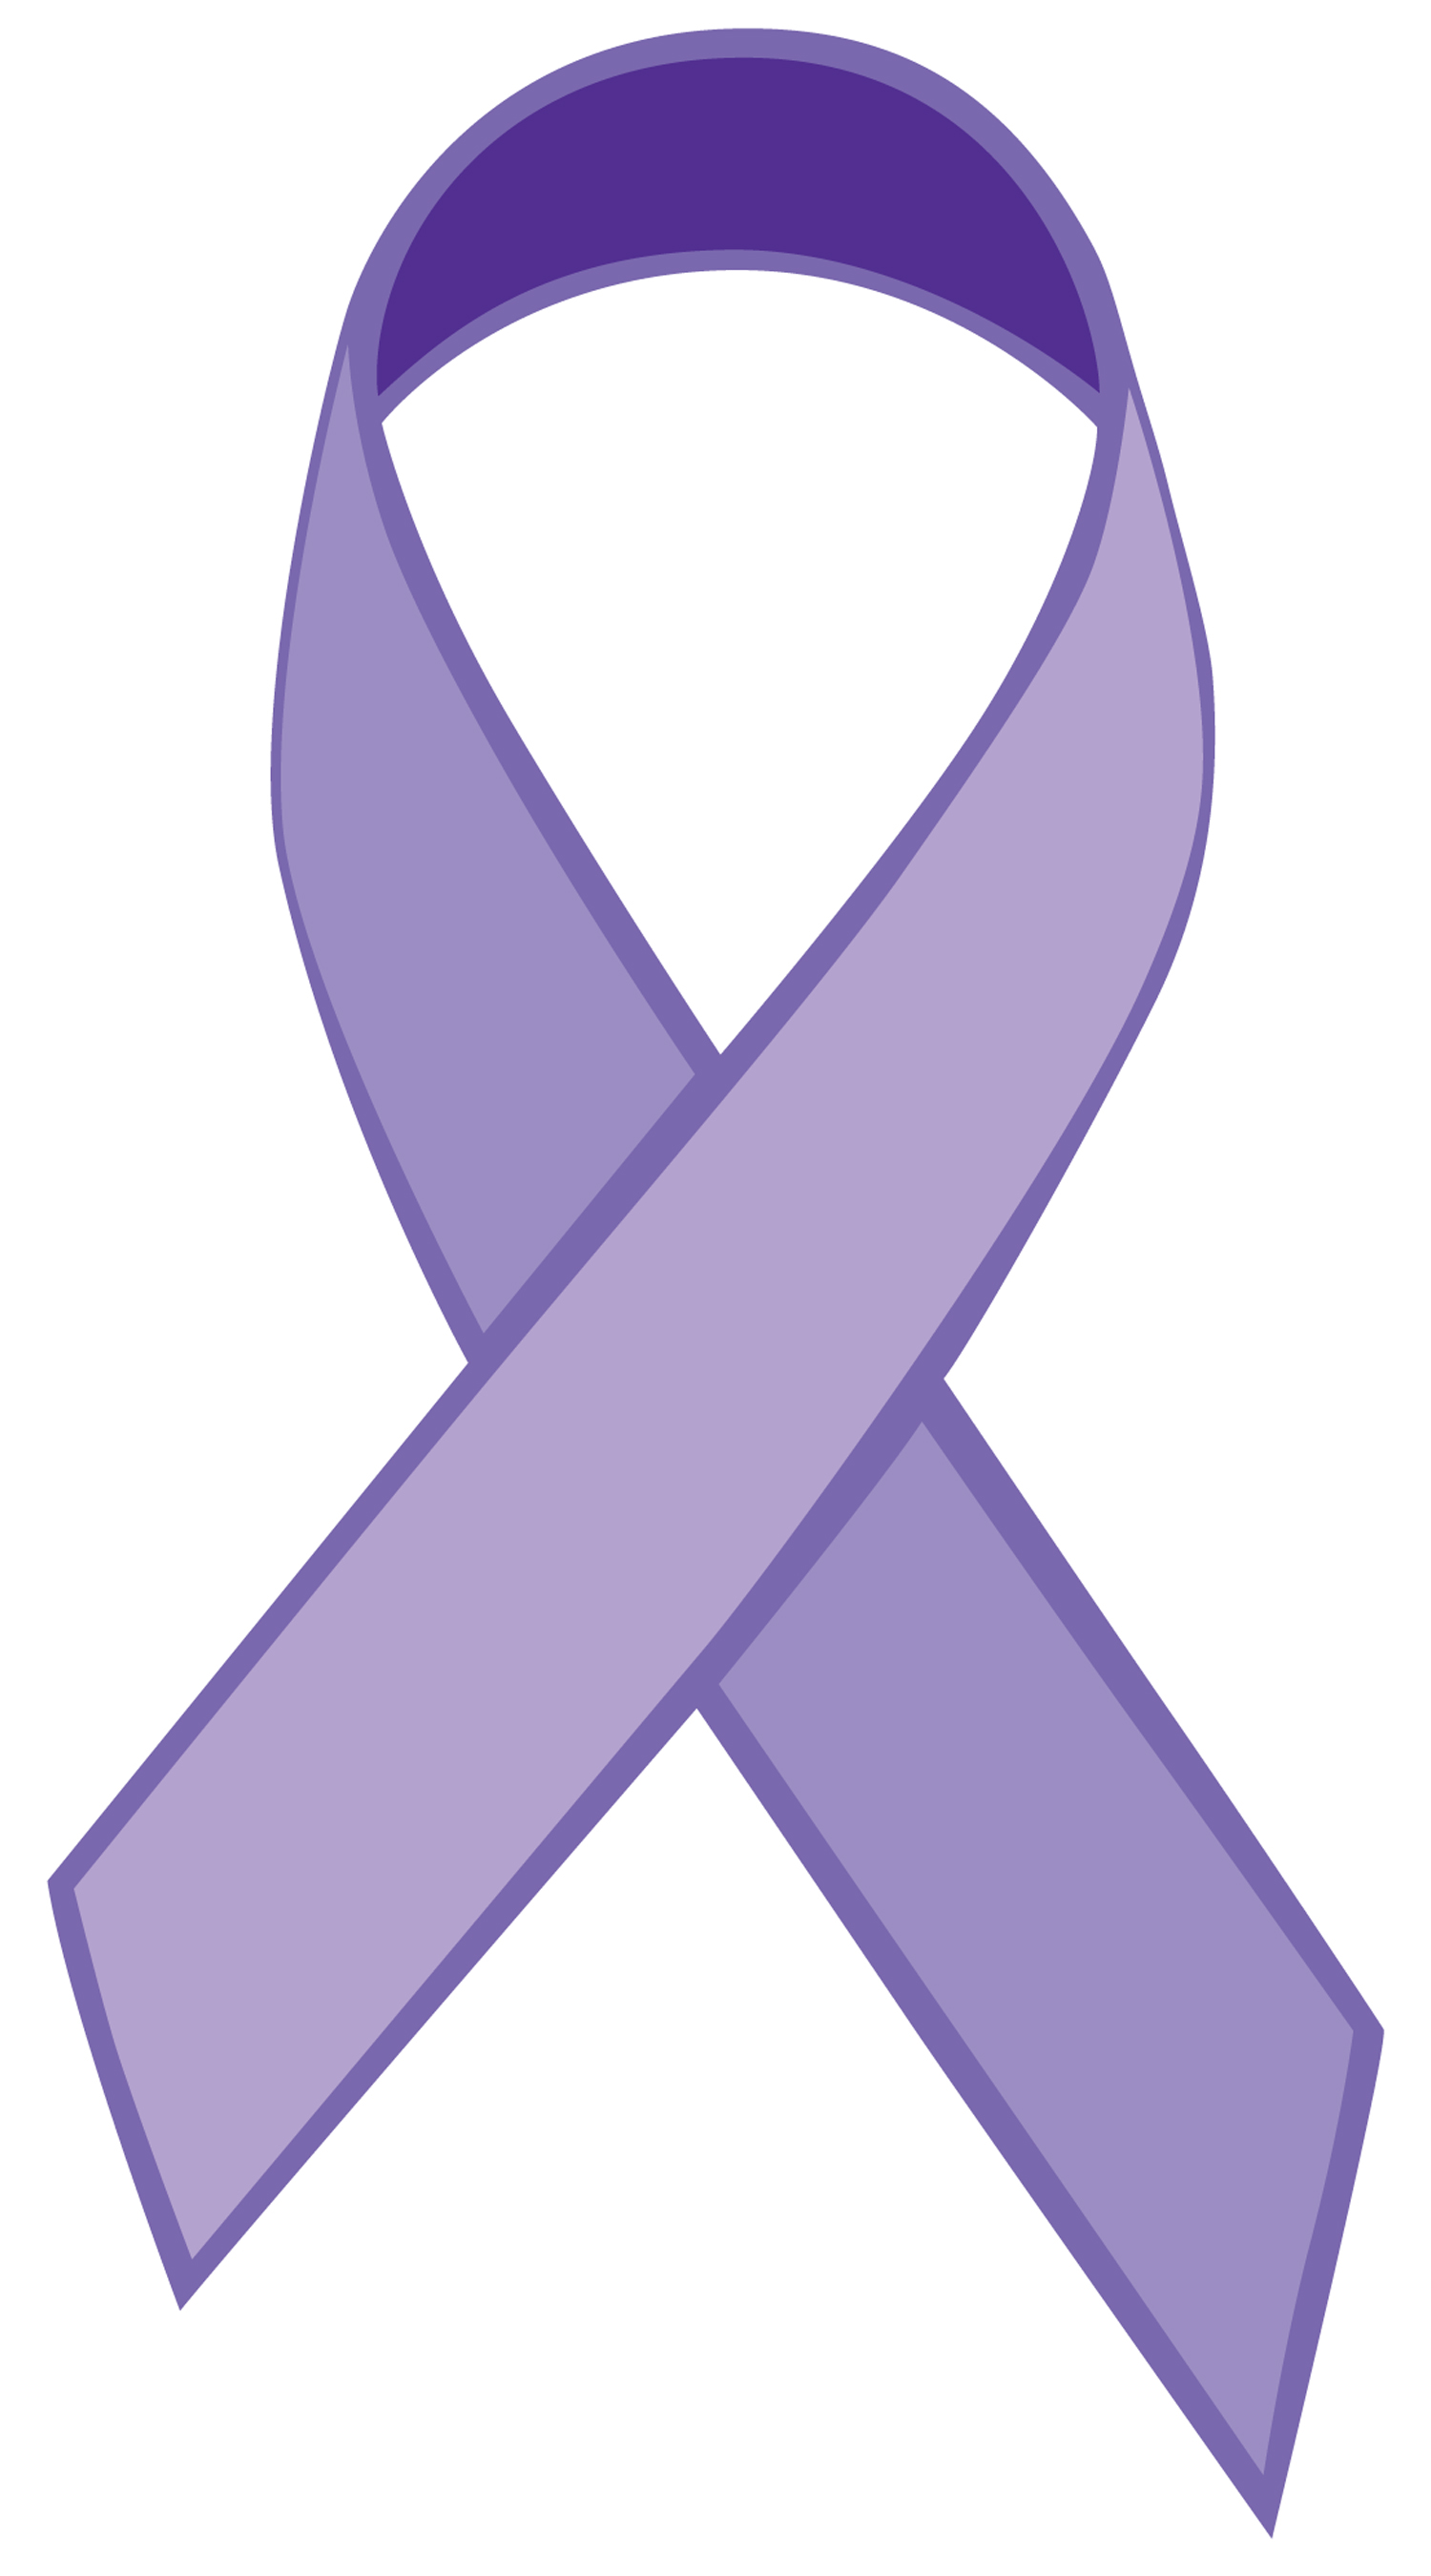 Needless clipart transparent Ribbon Cancer Clipart Day Memorial